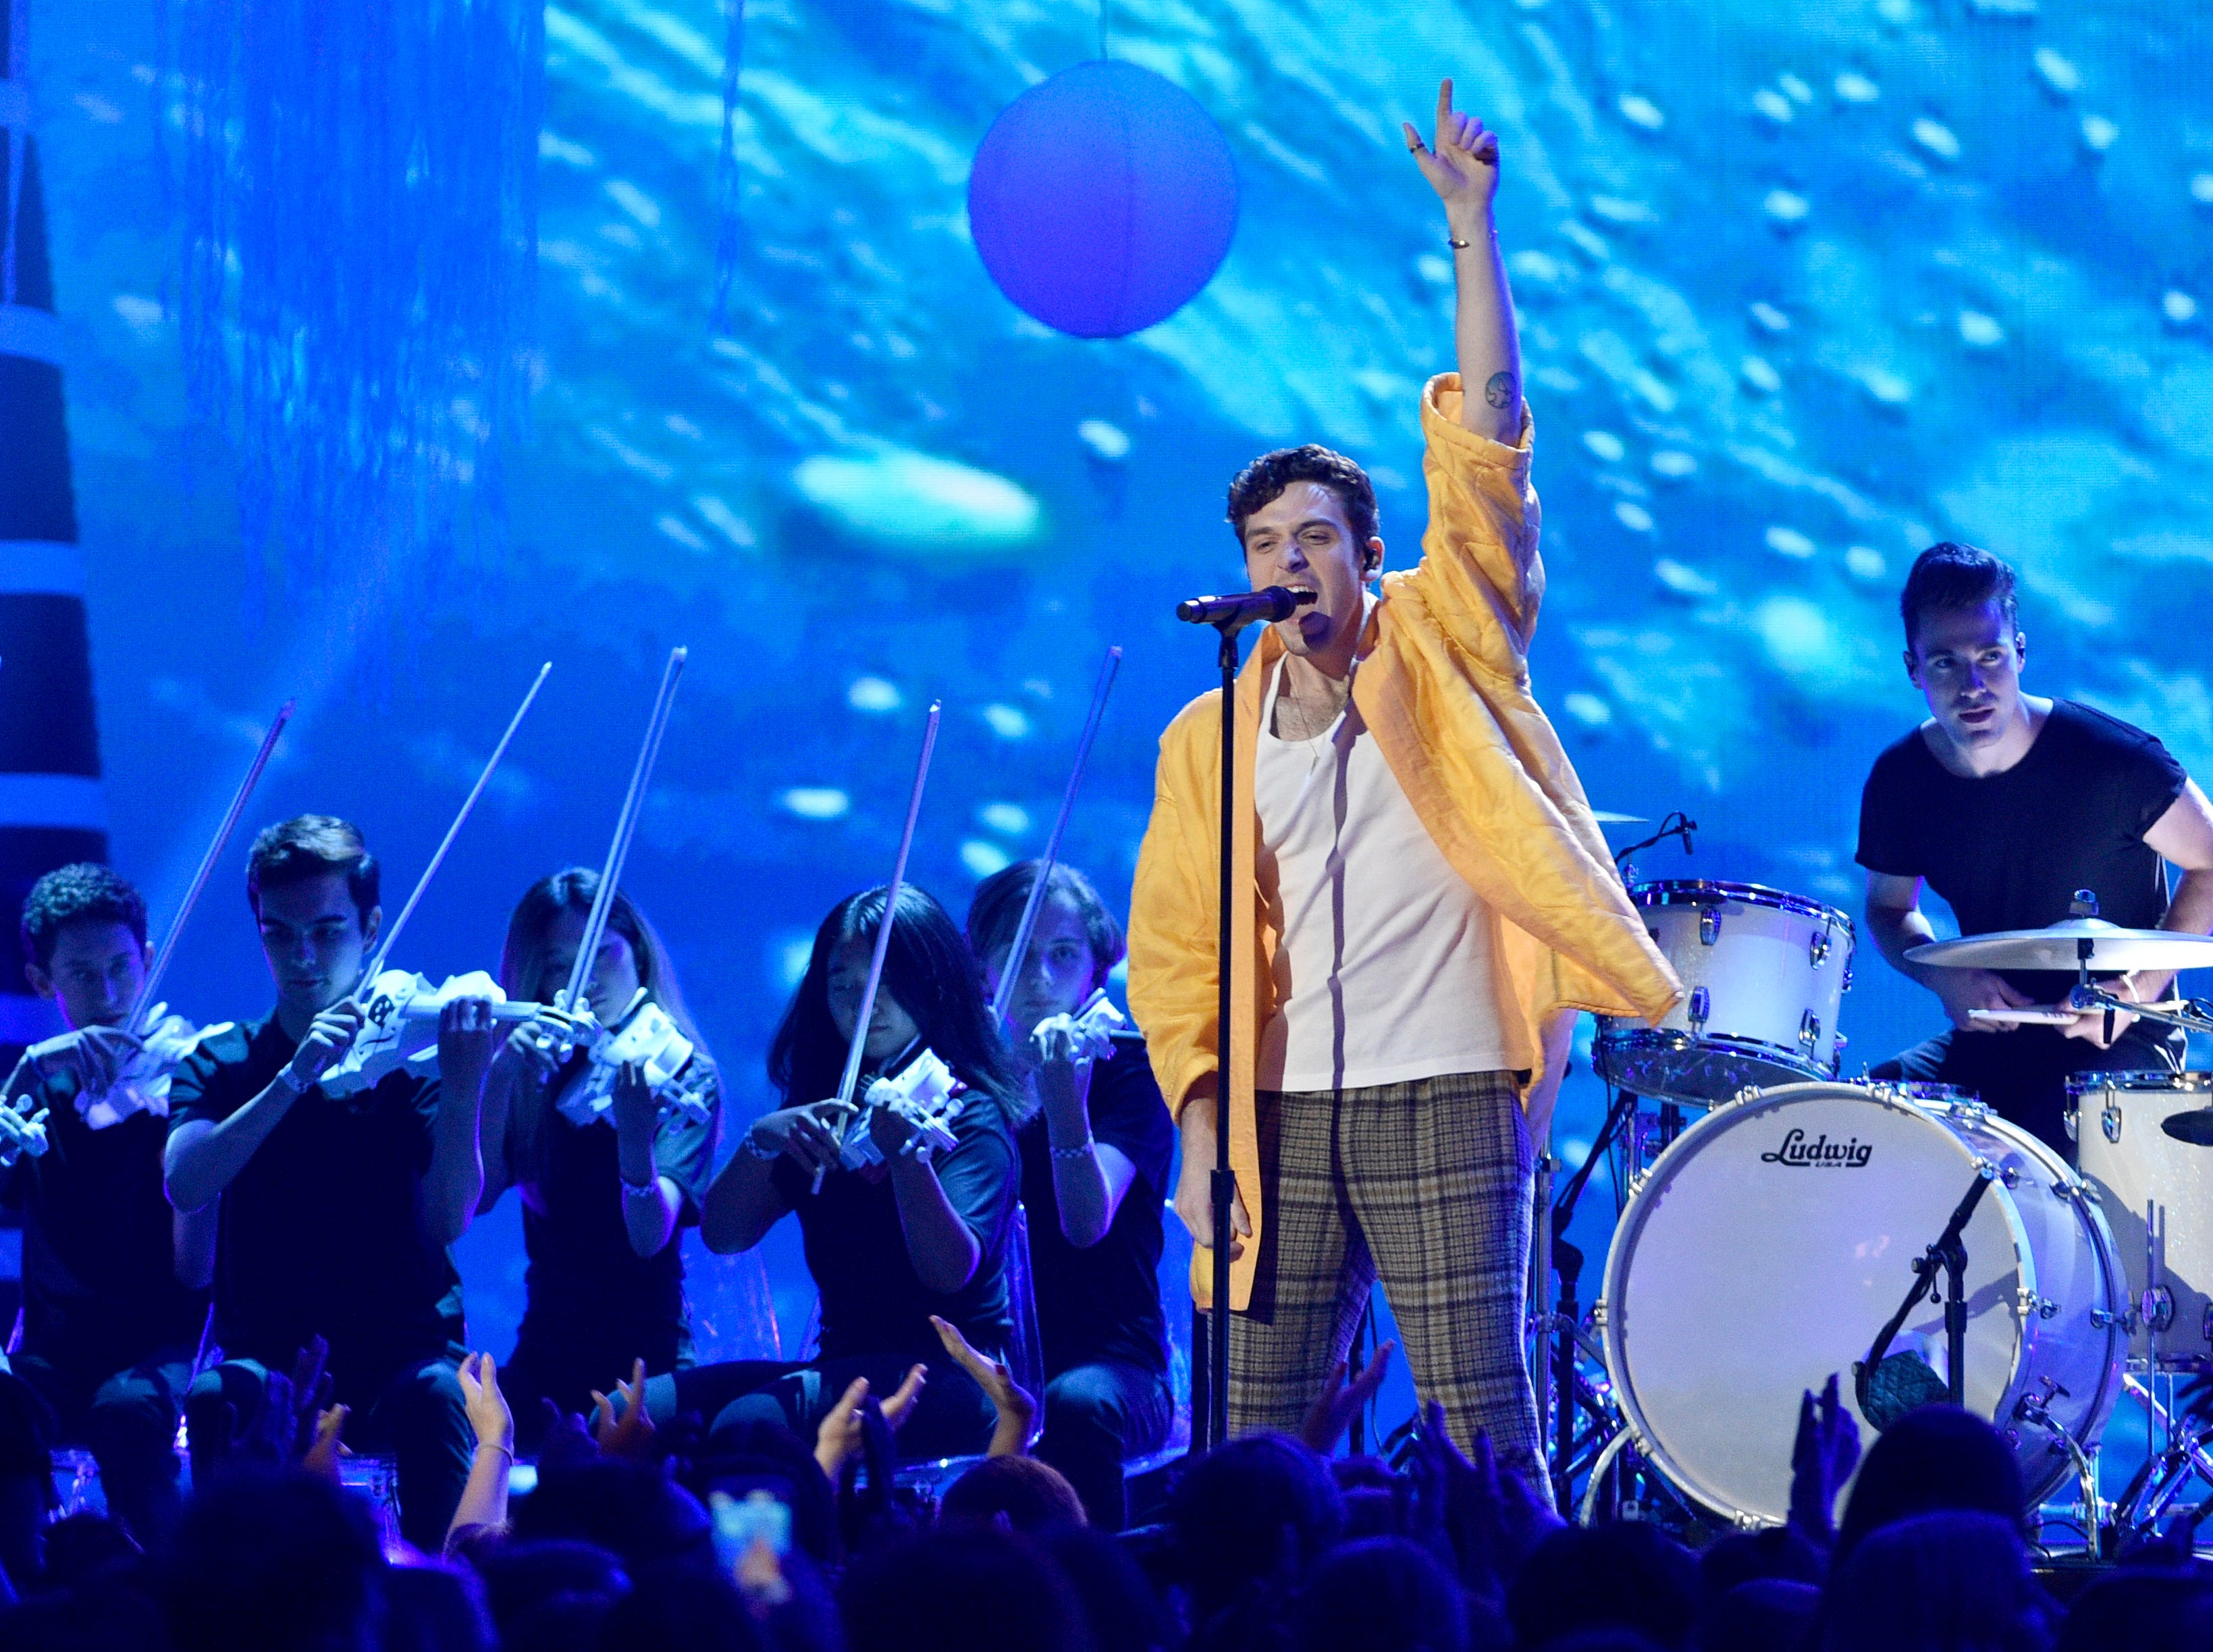 """Lauv performs """"I Like Me Better"""" at the Teen Choice Awards at The Forum on Sunday, Aug. 12, 2018, in Inglewood, Calif. (Photo by Chris Pizzello/Invision/AP)"""